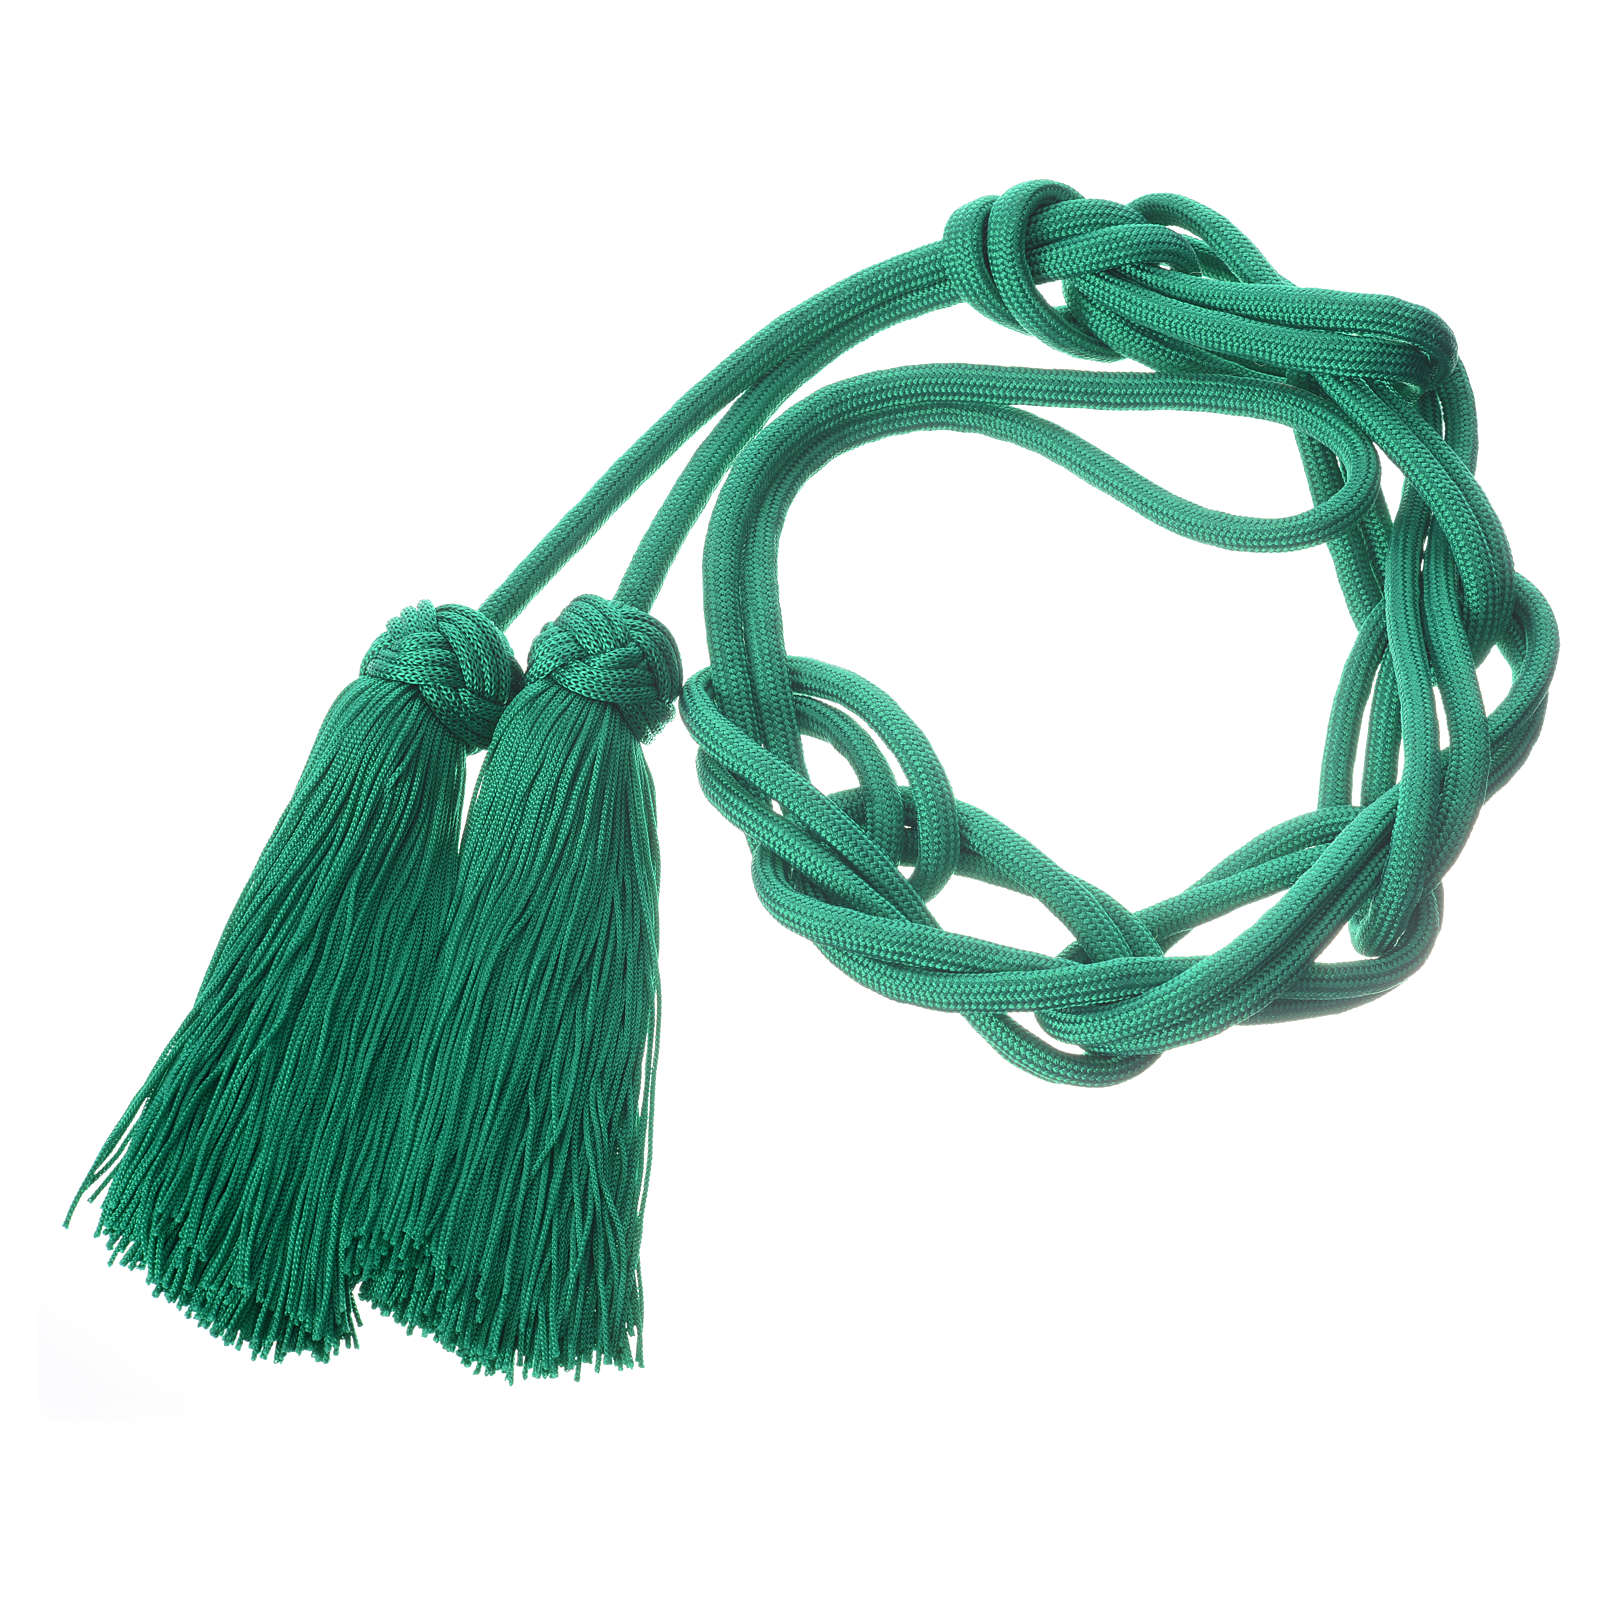 Cincture cord in different colors 4